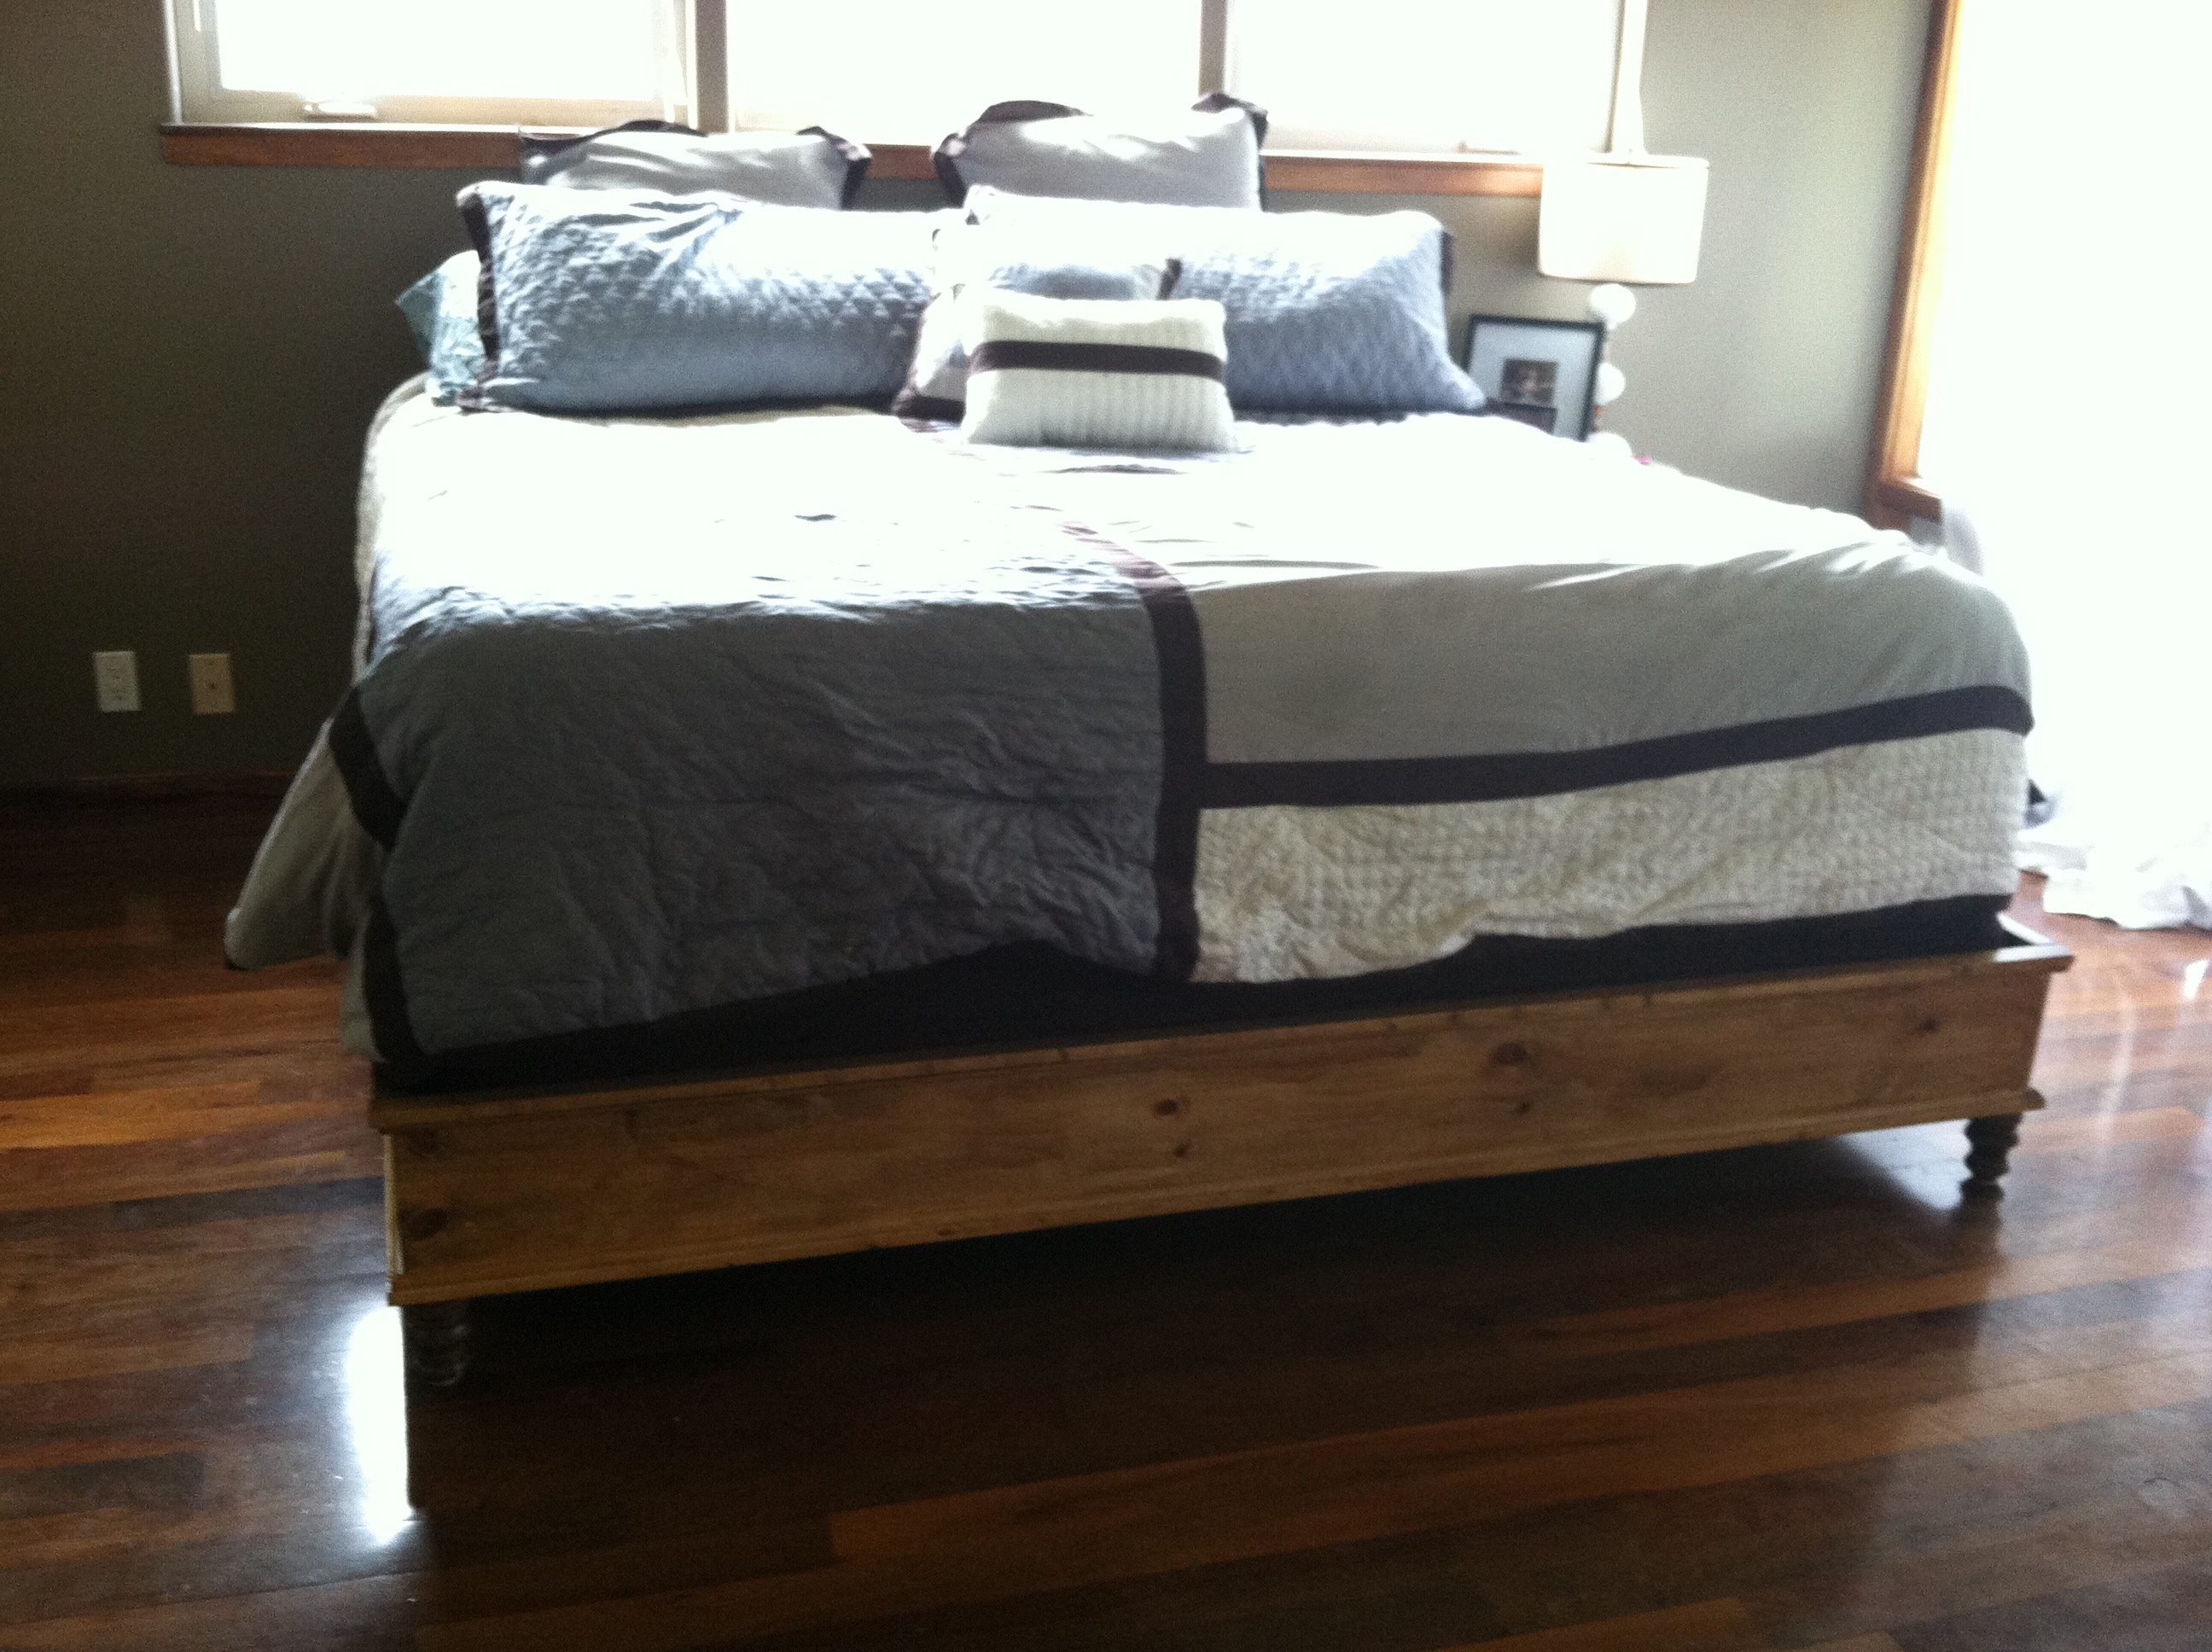 Best ideas about King Size Bed Frame DIY . Save or Pin Ana White Now.